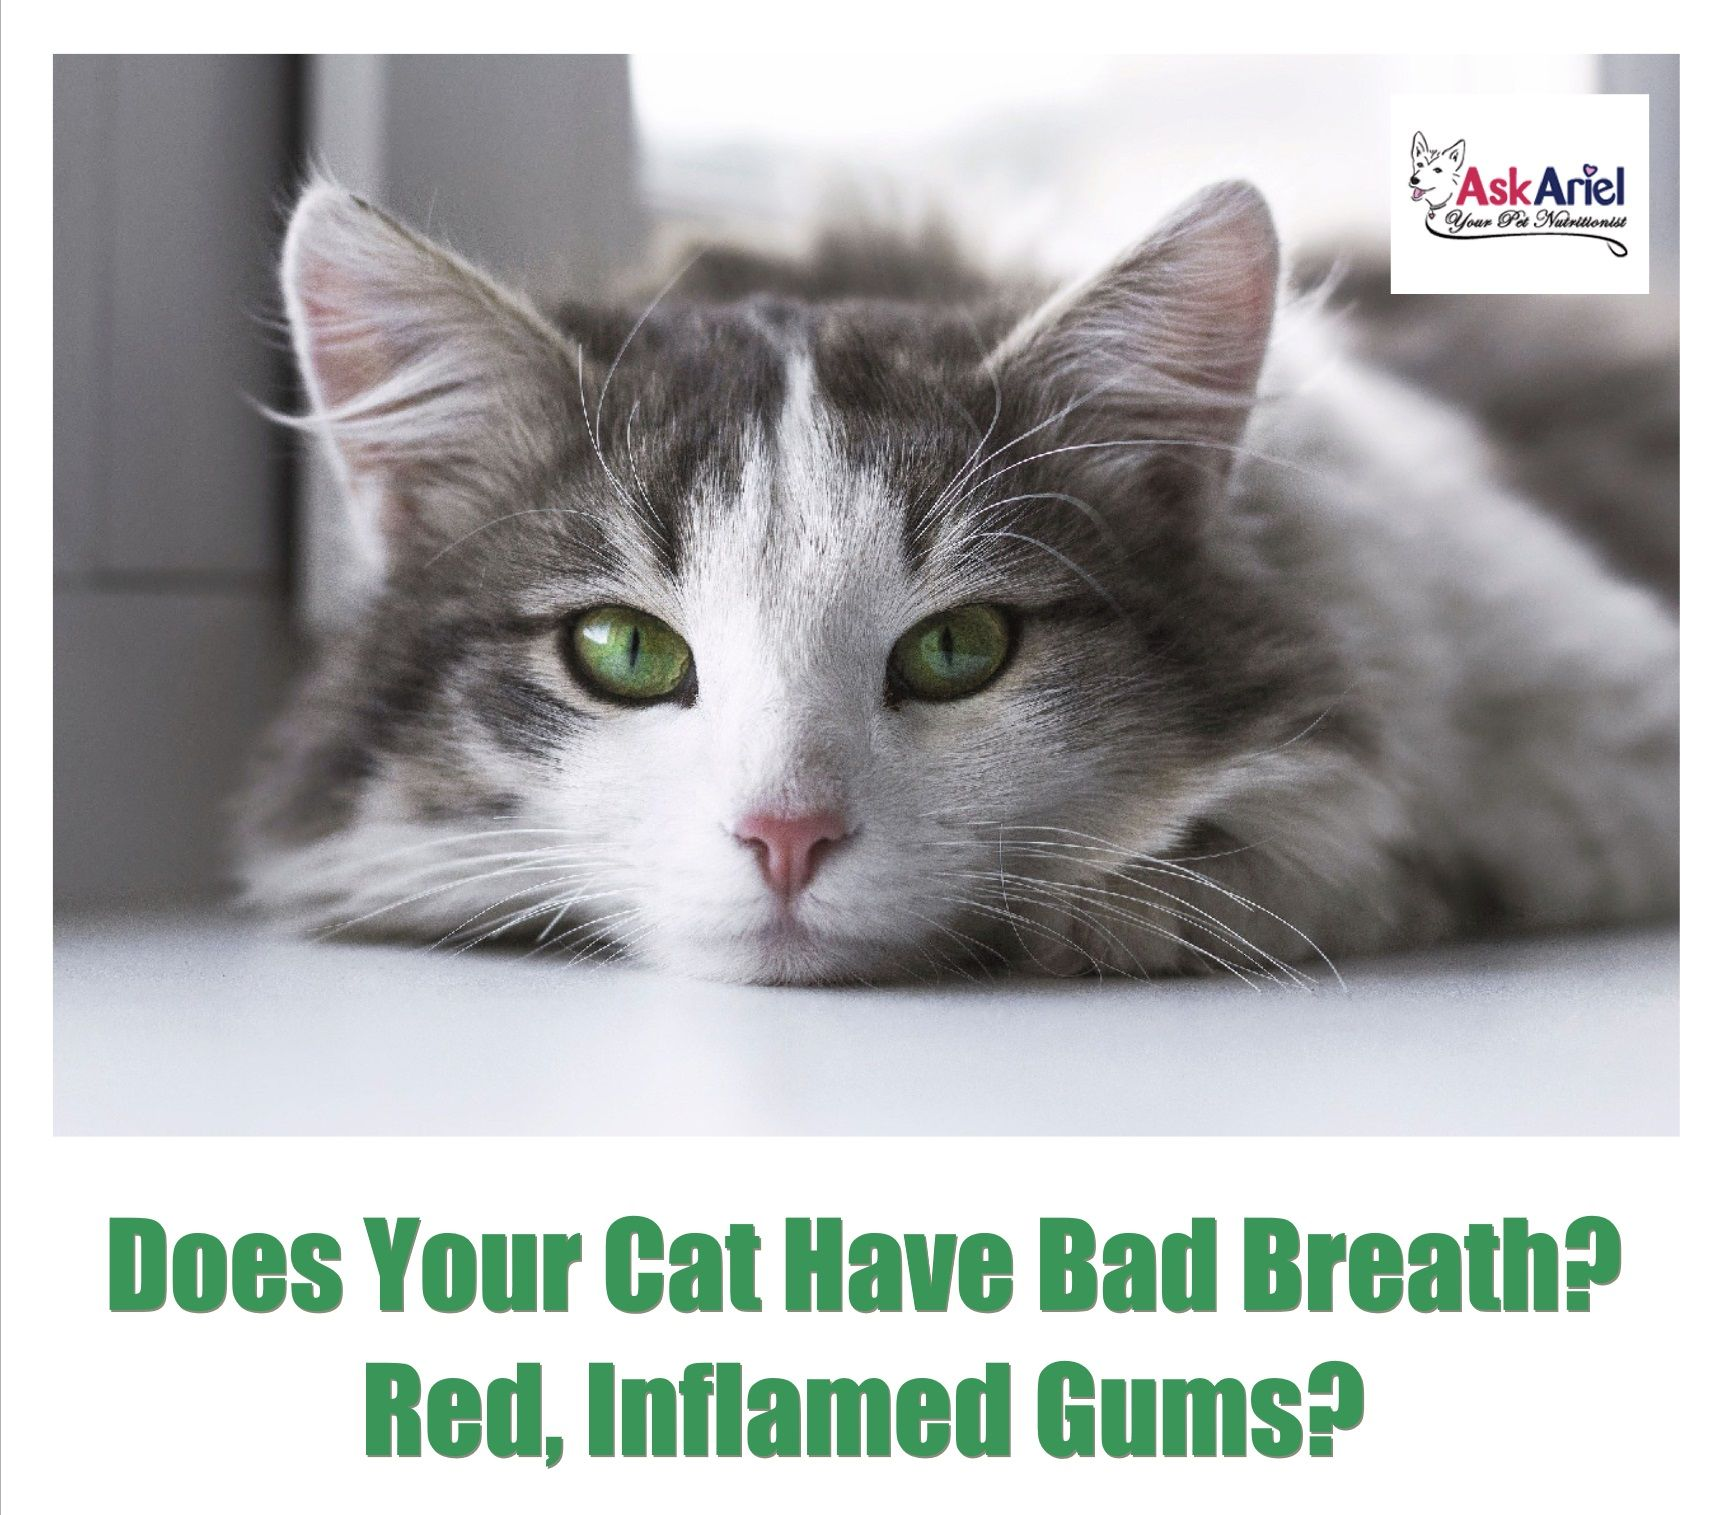 Bad Breath In Cats Stomatitis In 2020 Cats Cat Health Problems Bad Breath